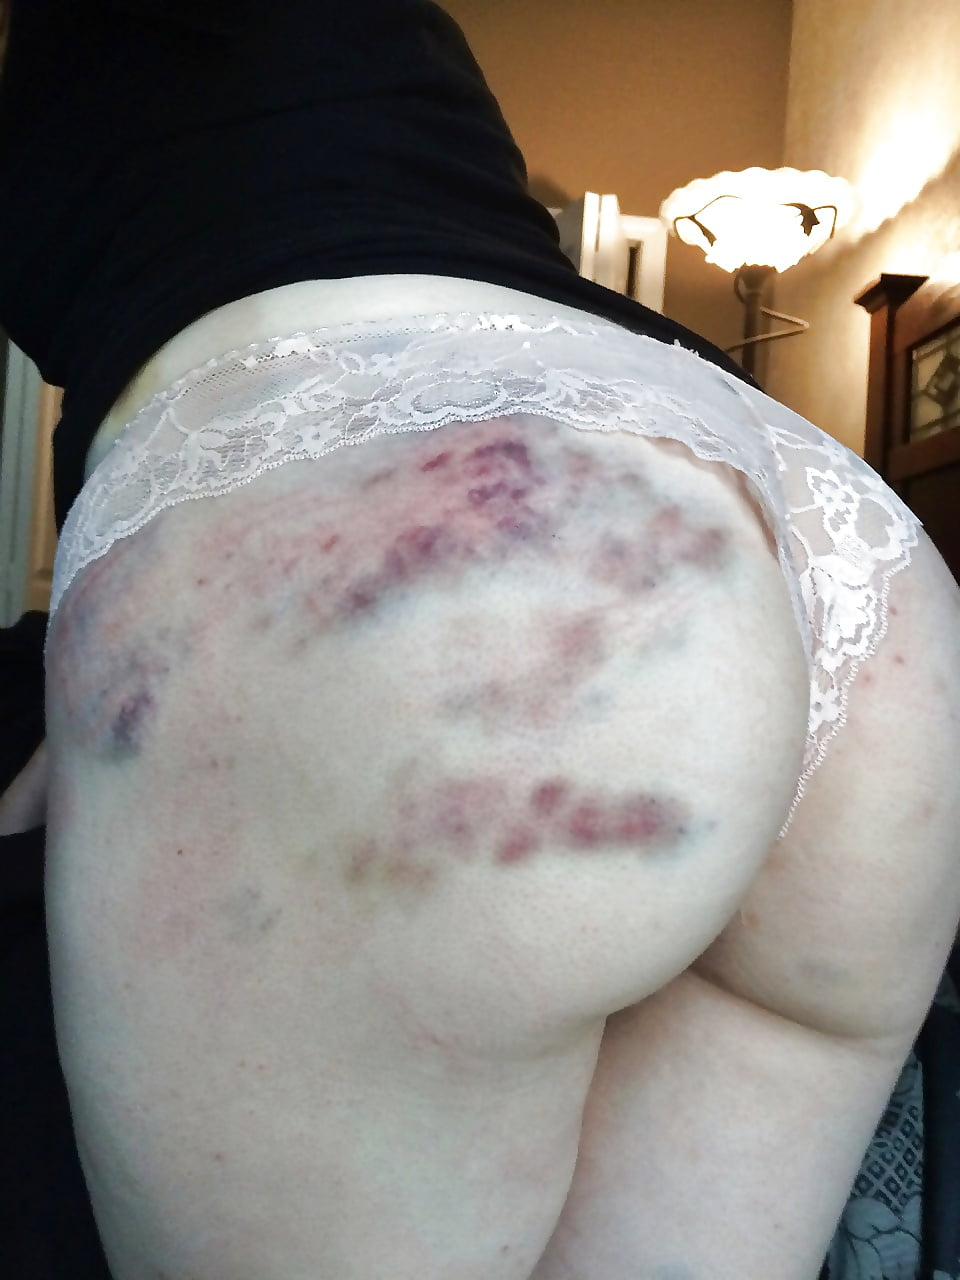 bruising Bdsm ever acceptable is